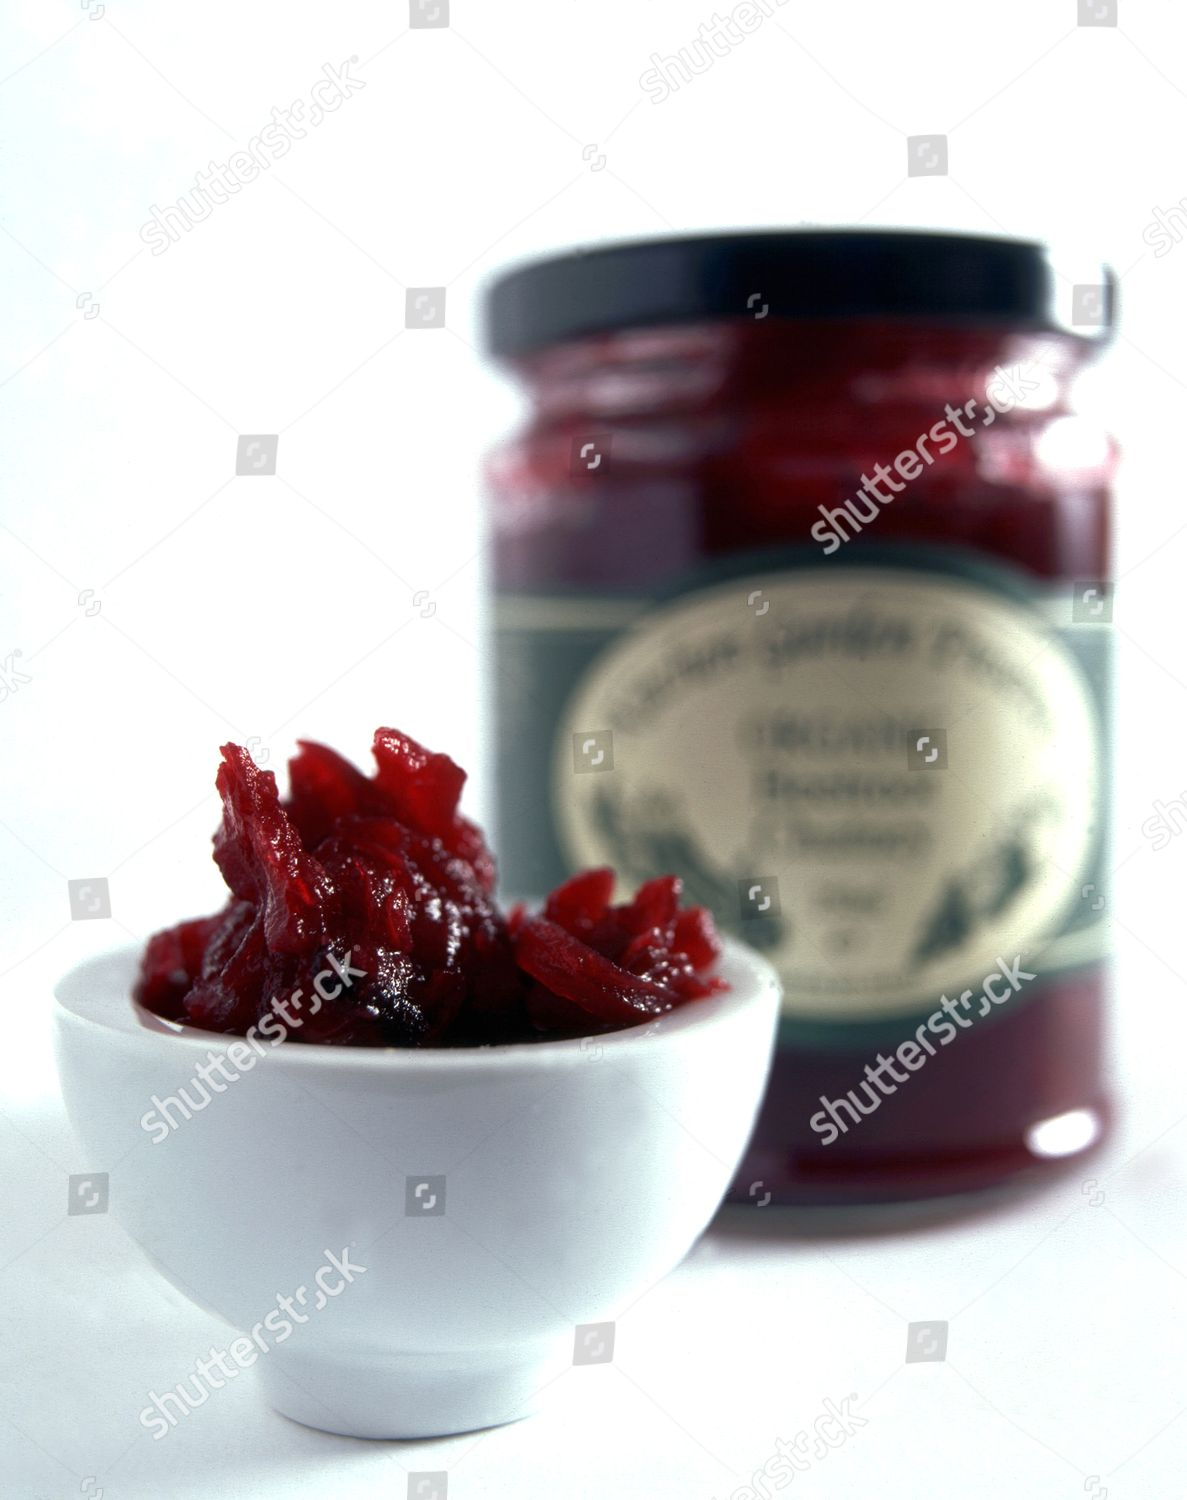 Organic Beetroot Chutney Bowl Jar Background Editorial Stock Photo